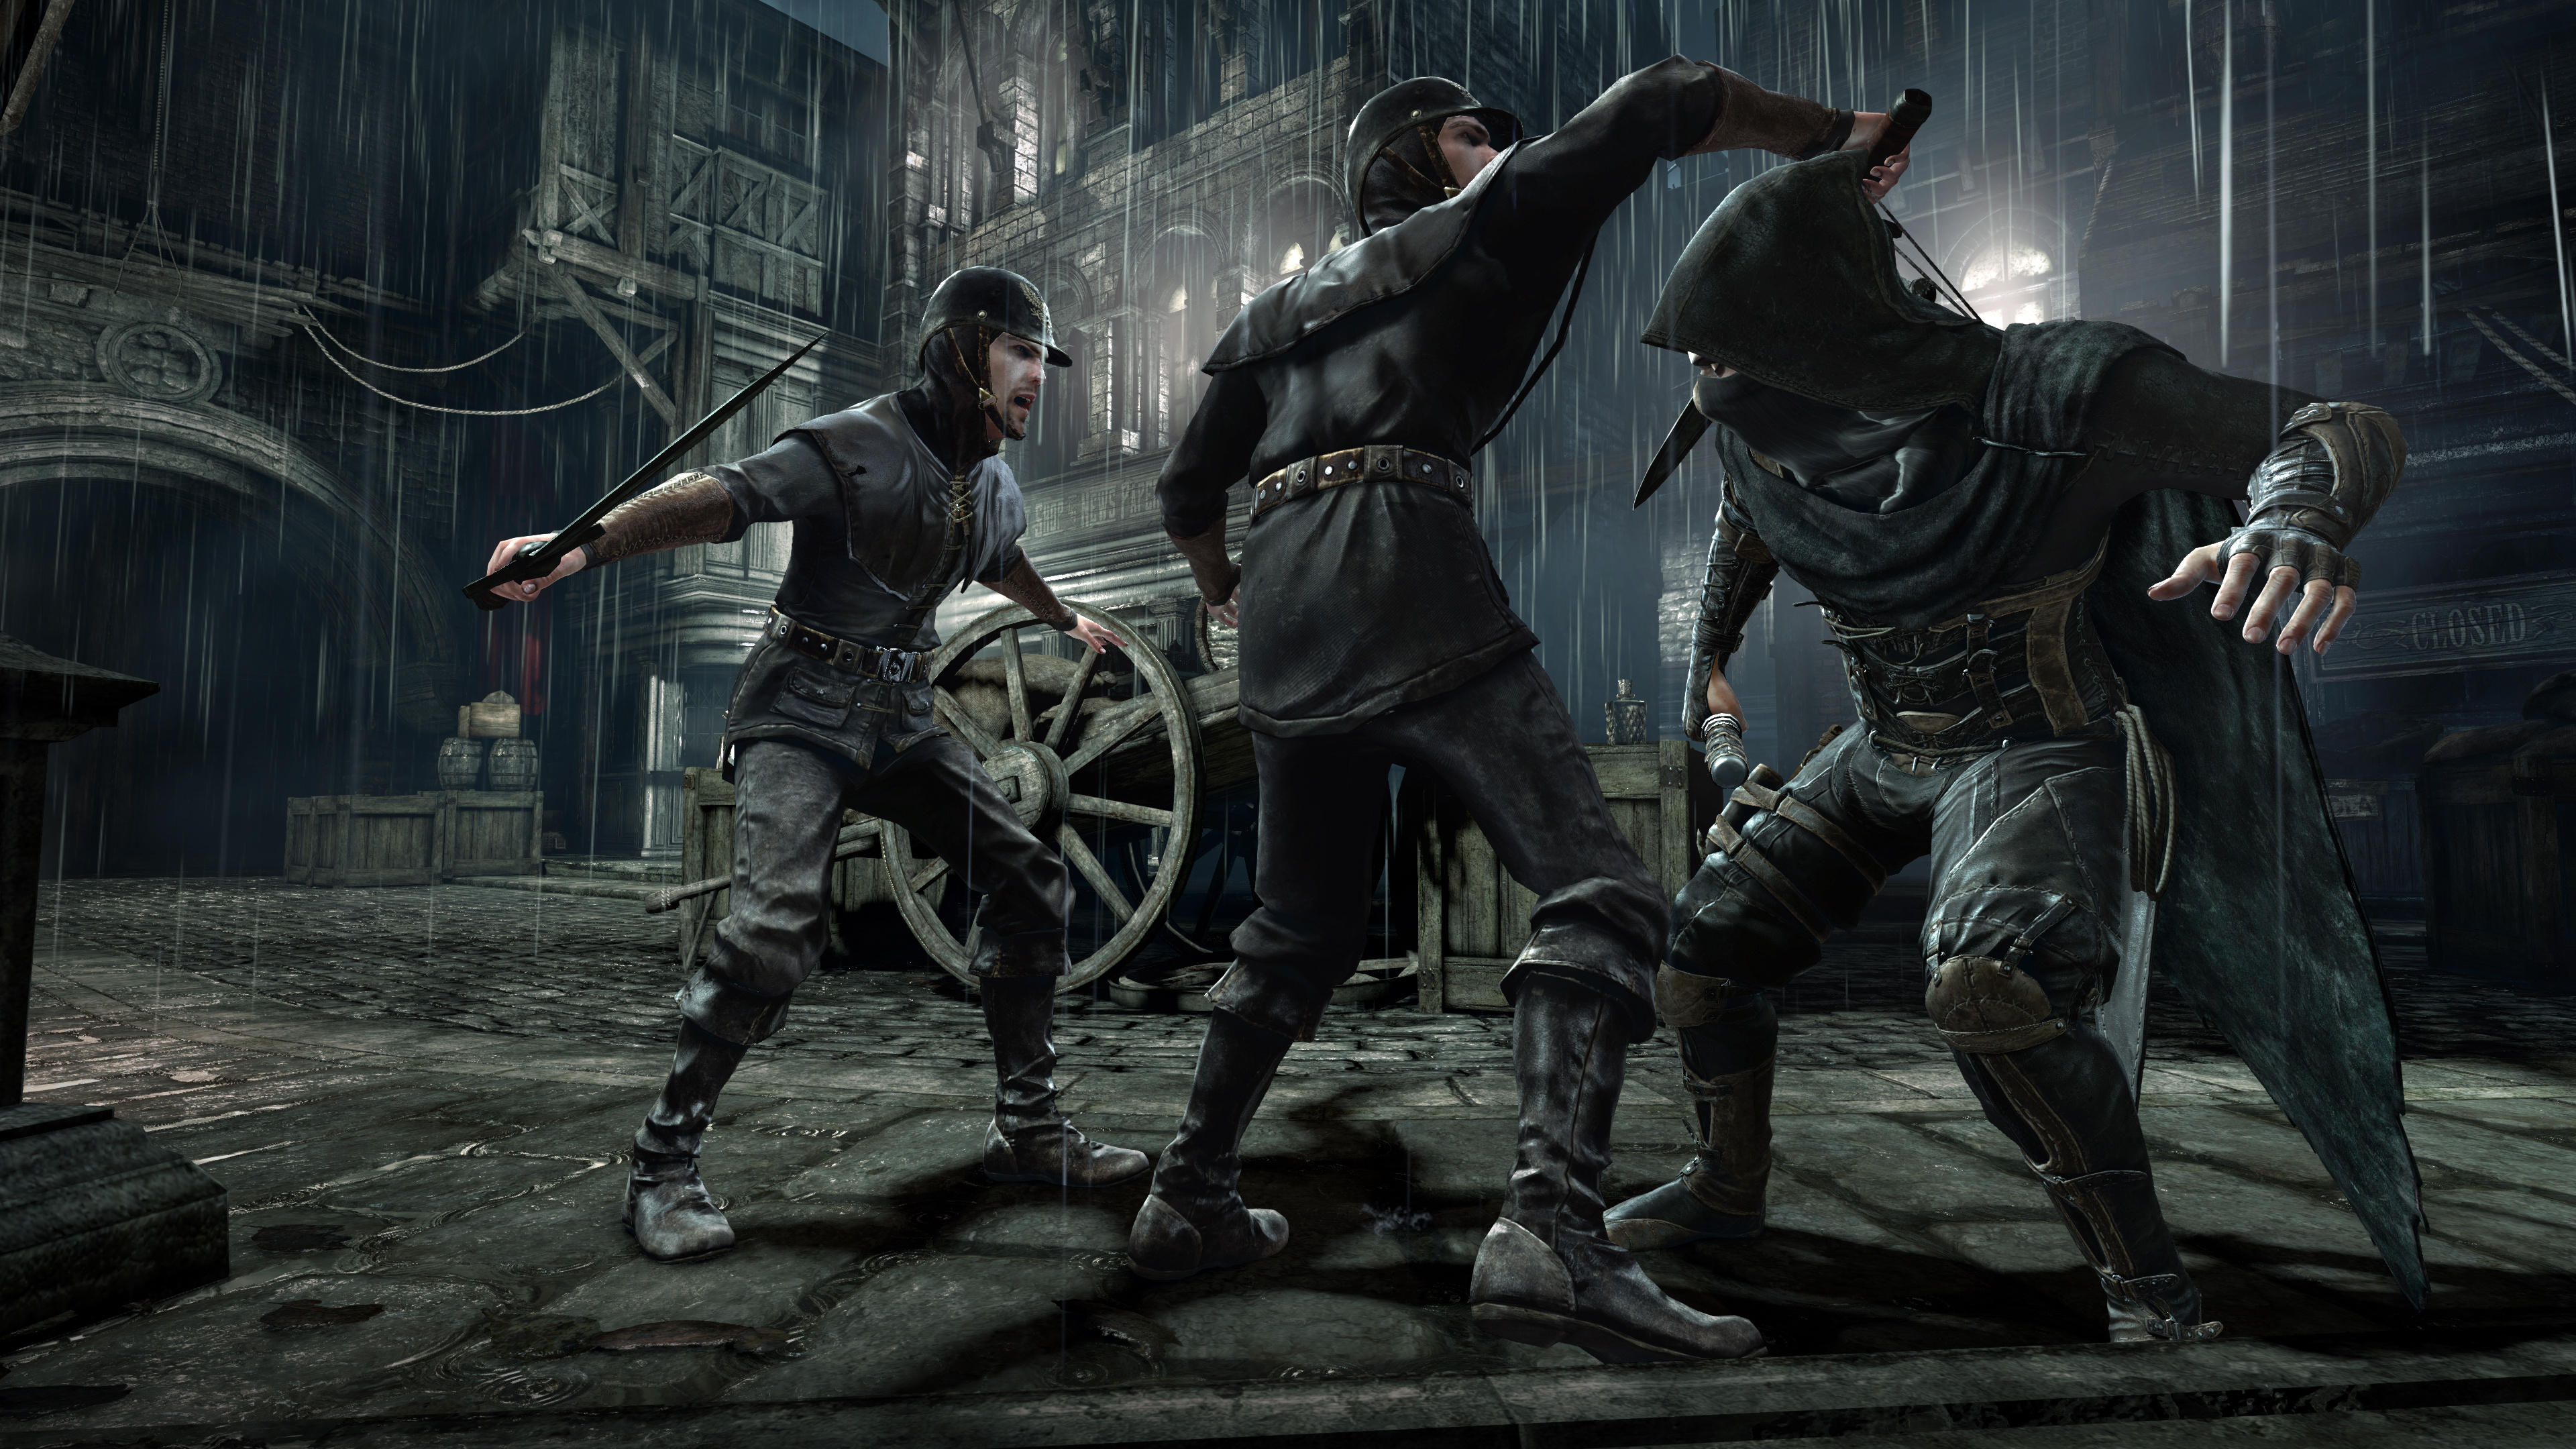 Thief-gameplay-screenshot-1